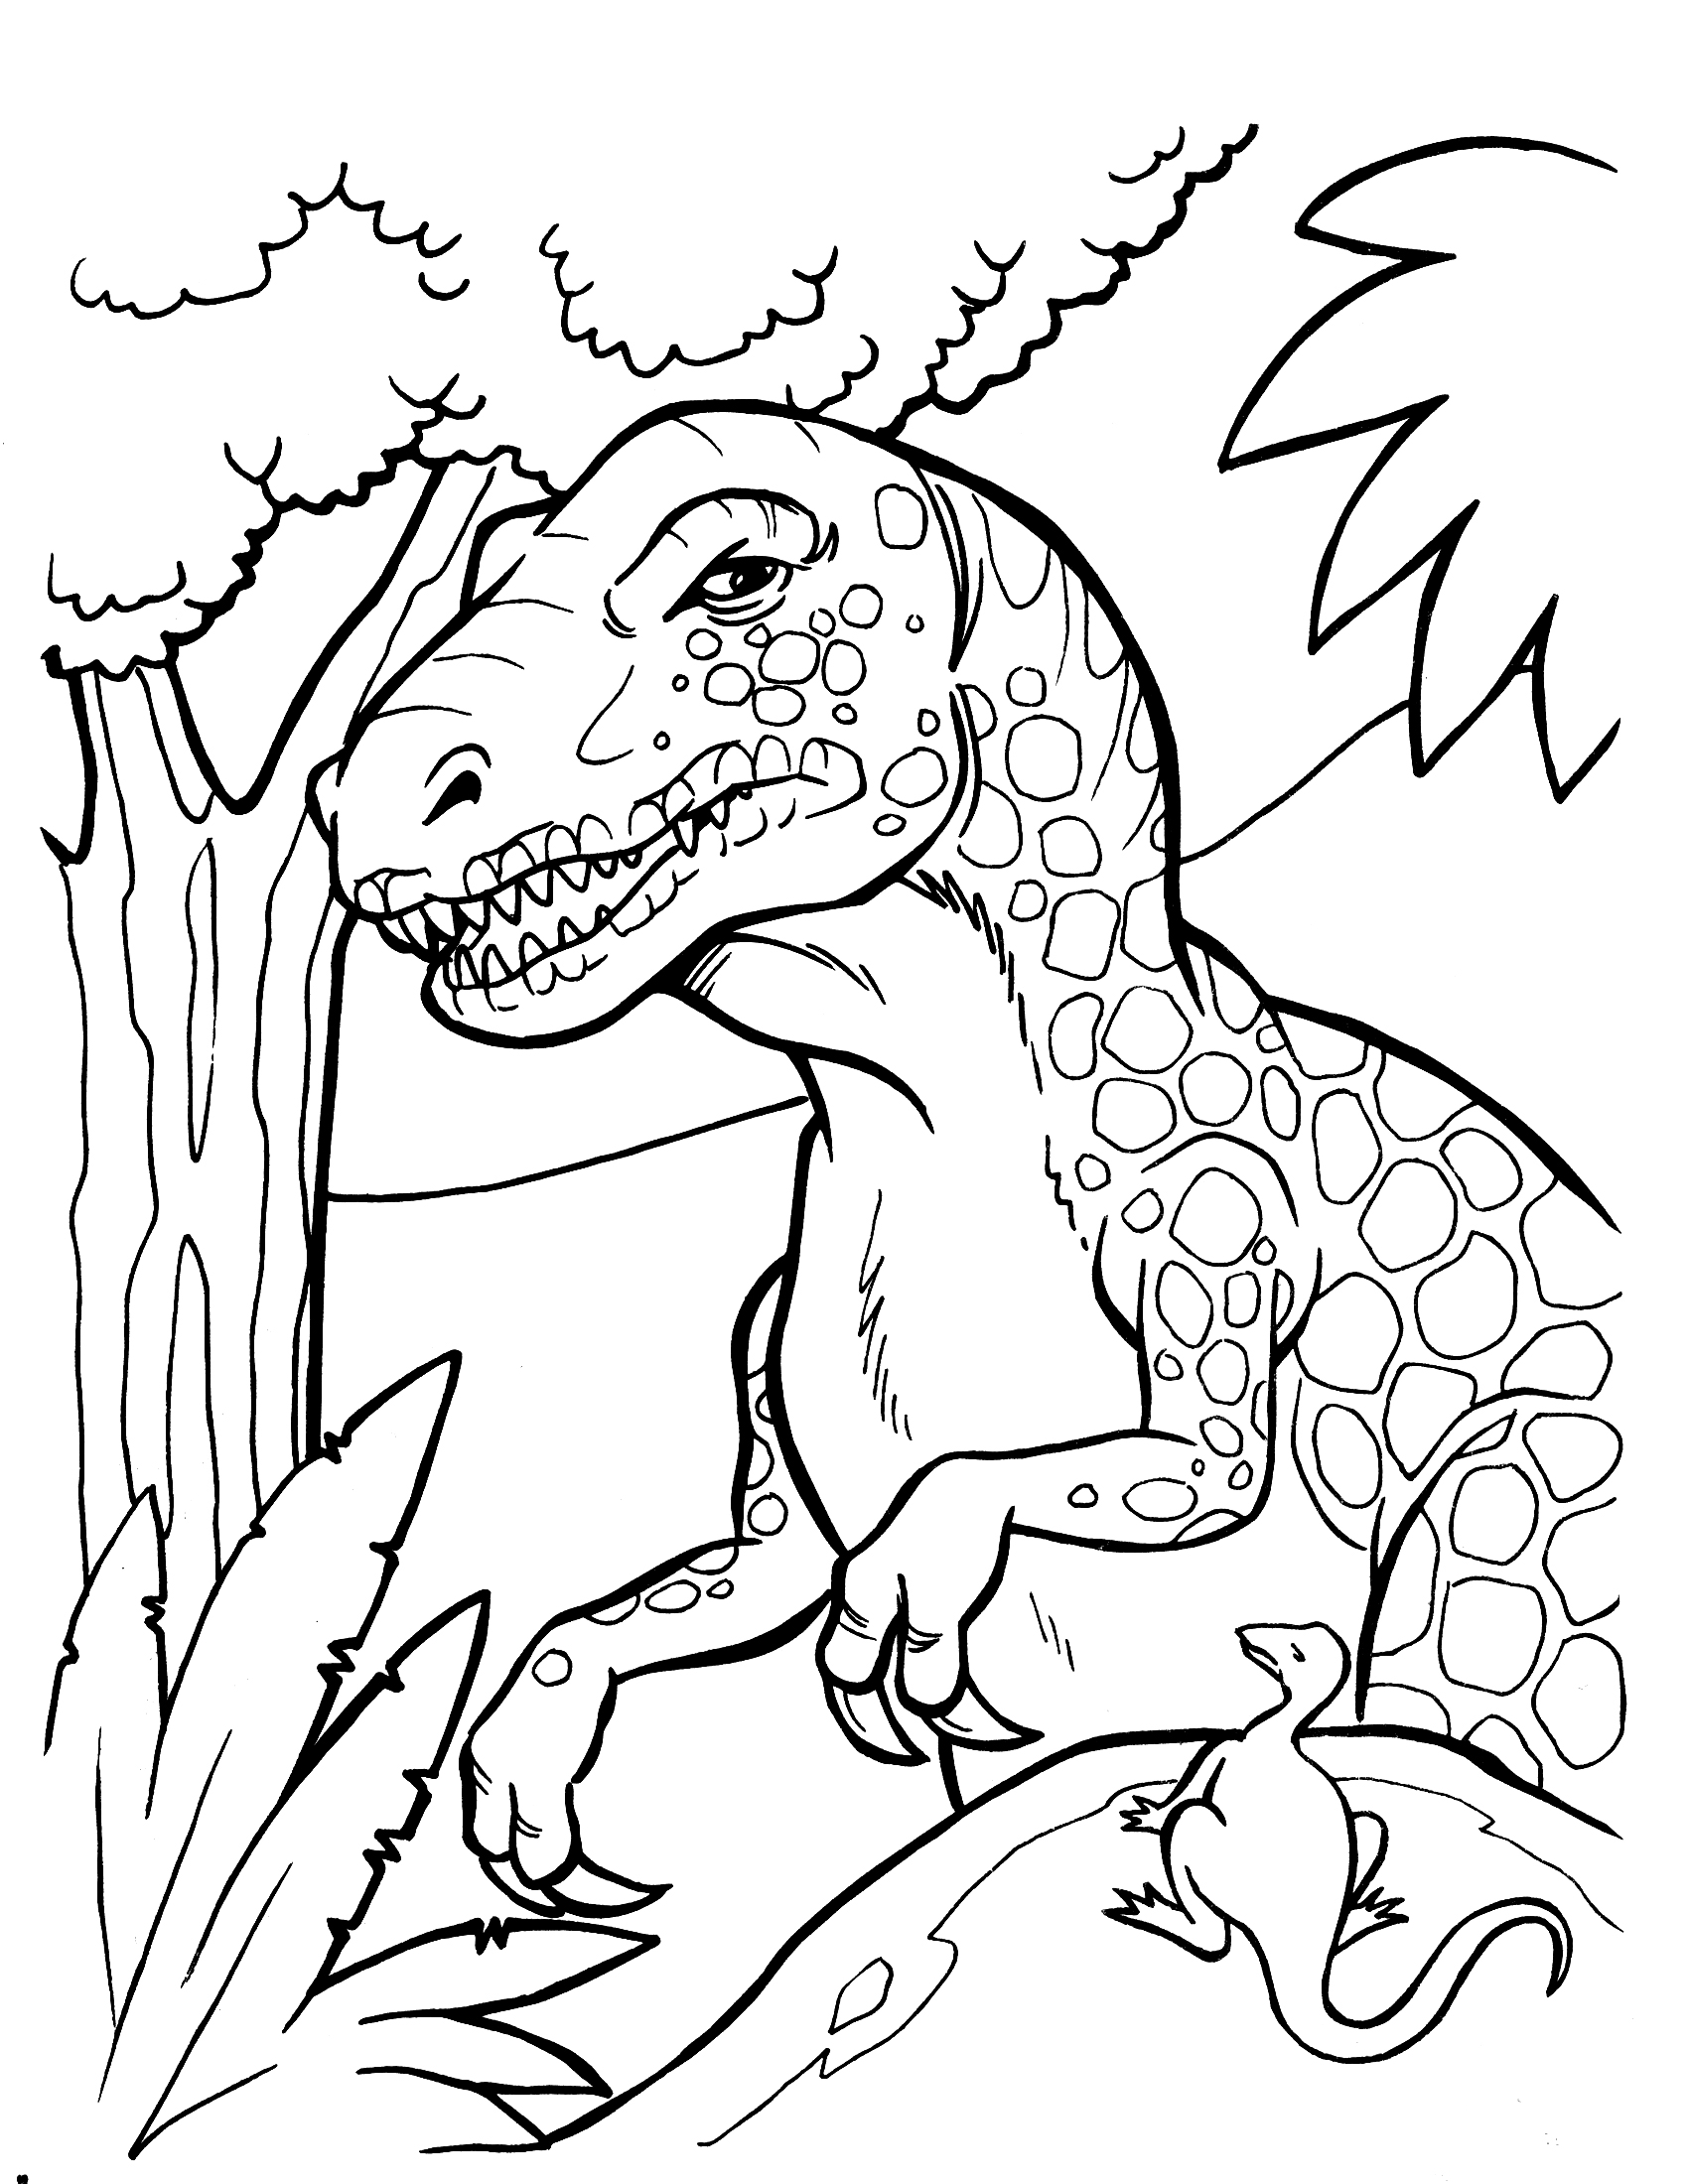 dinosaurs coloring page dinosaurs coloring pages collection free coloring sheets page dinosaurs coloring